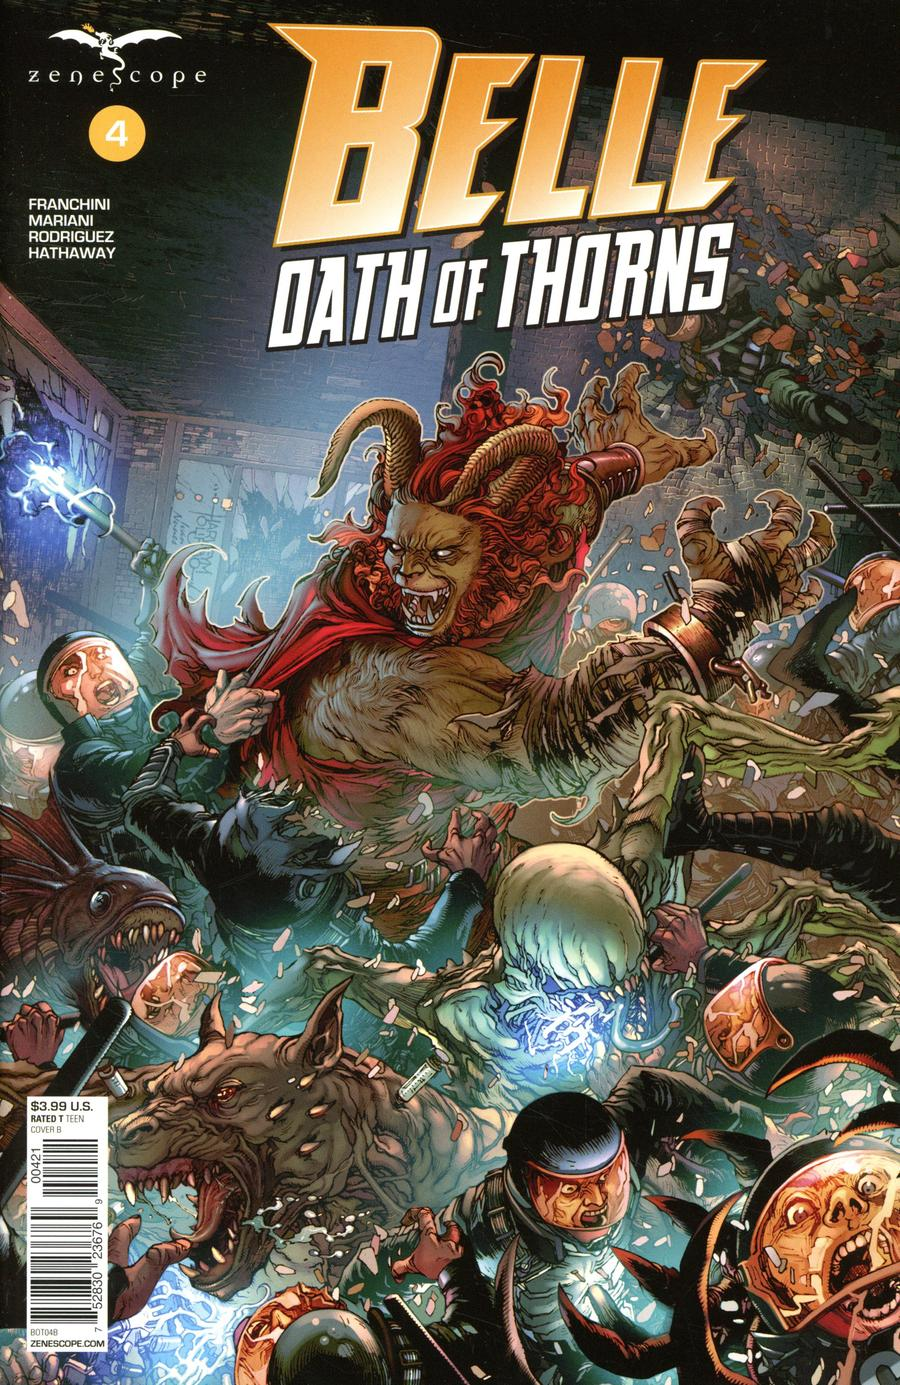 Grimm Fairy Tales Presents Belle Oath Of Thorns #4 Cover B Harvey Tolibao